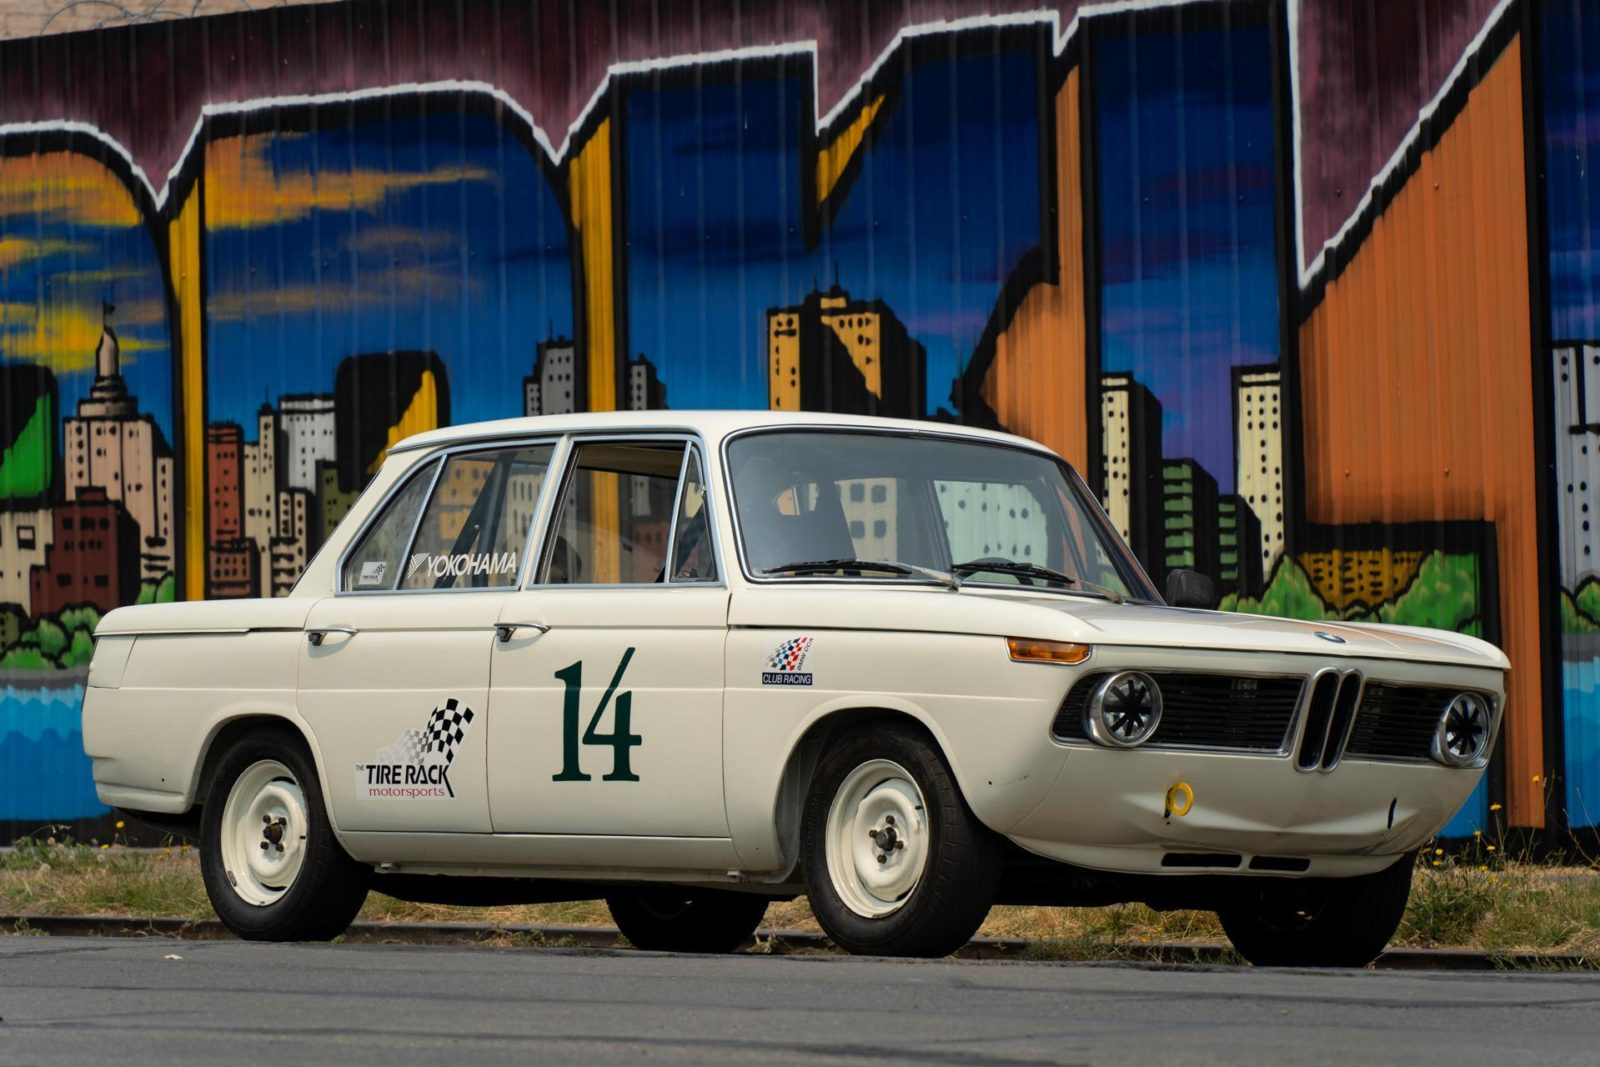 this-is-one-tasty-and-modded-1966-bmw-2000ti-5-speed-race-car